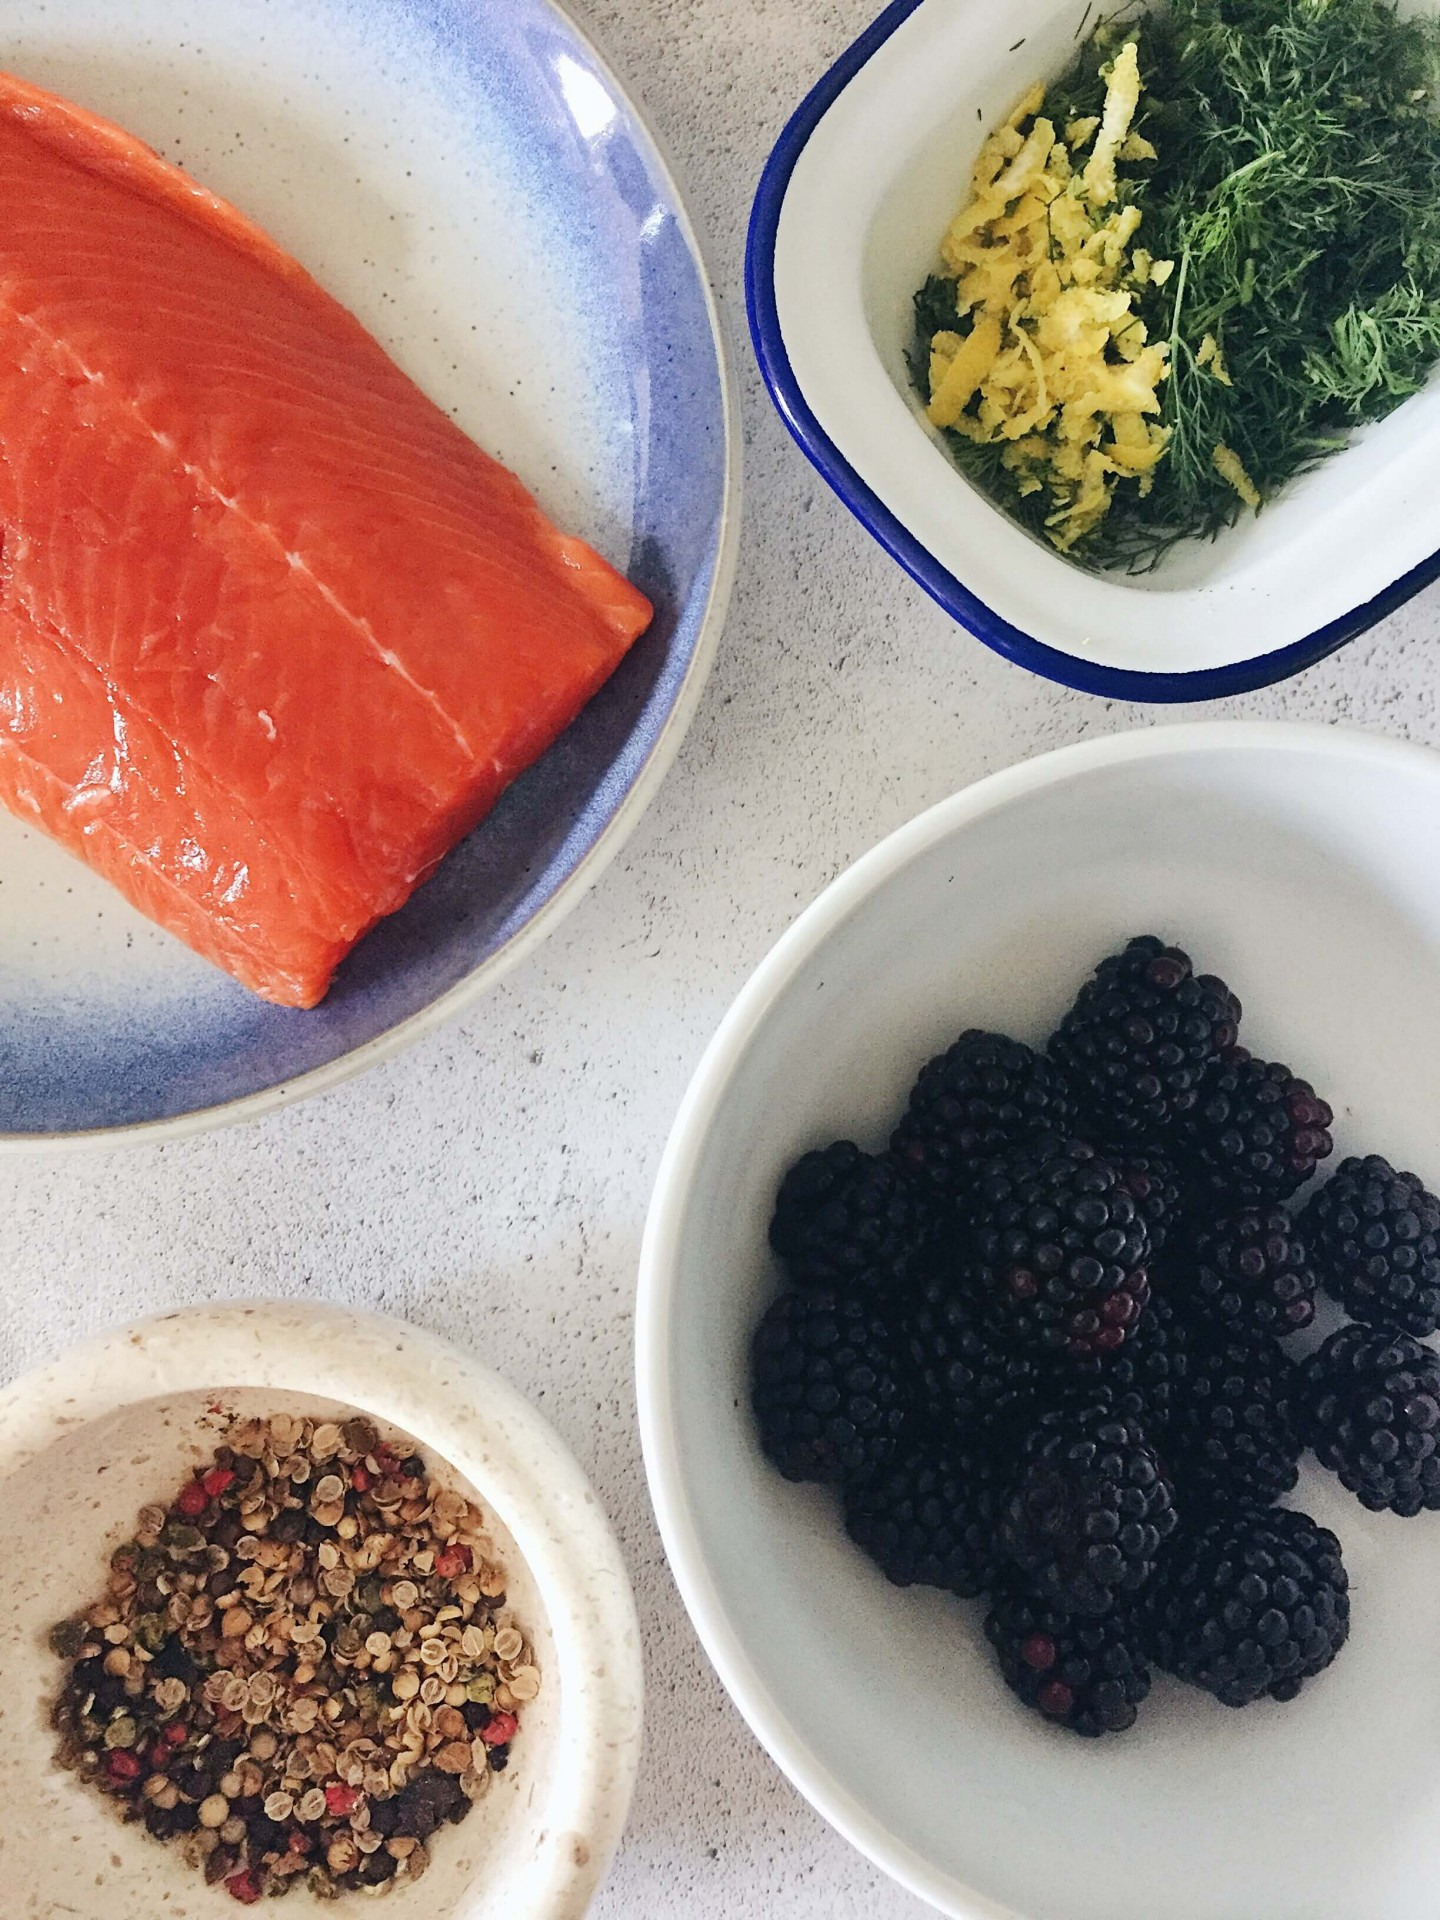 The ingredients for gin and blackberry cured salmon recipe.